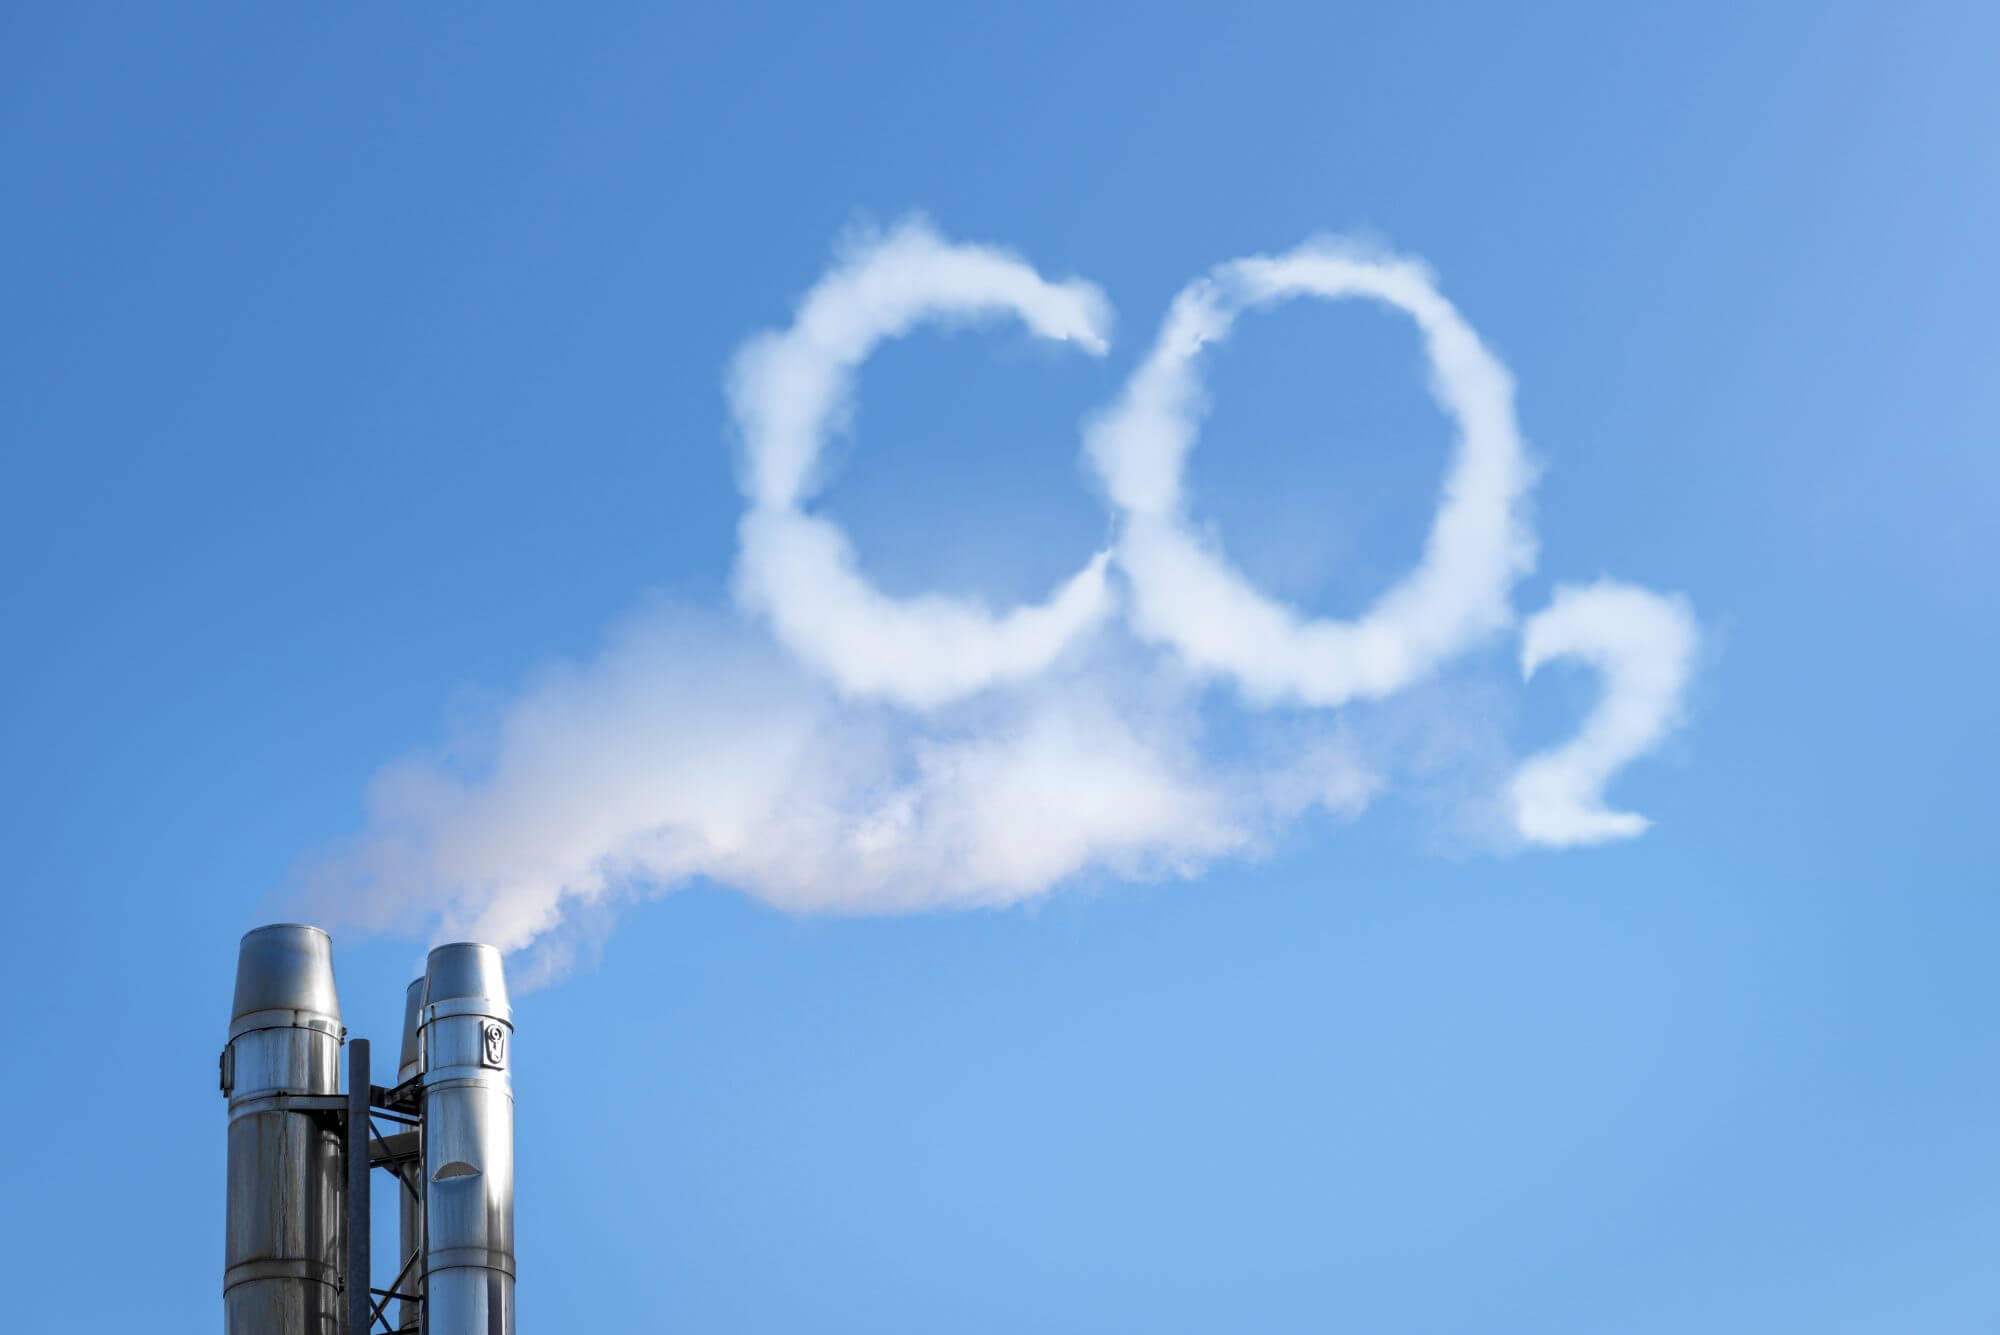 19% reduction of net CO2 emissions achieved by Dubai